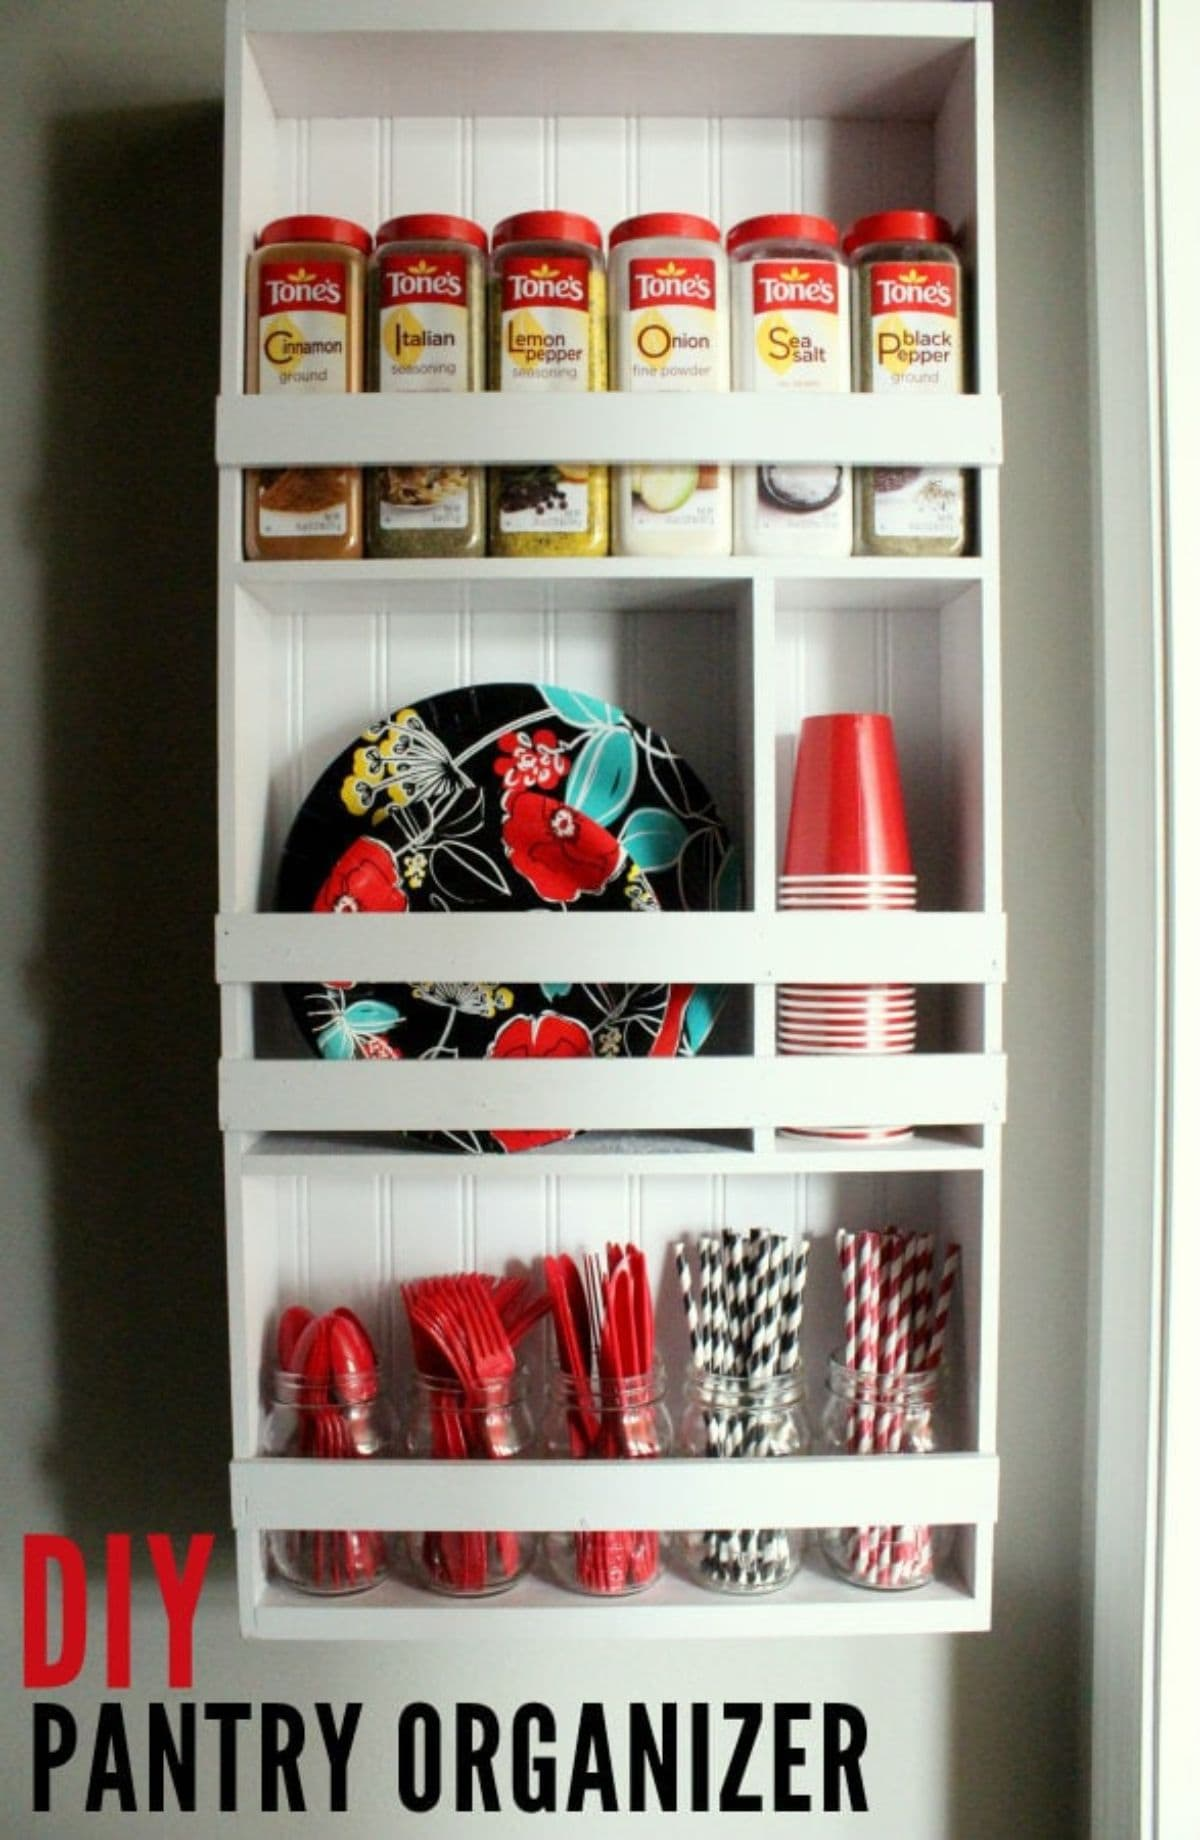 The inside of a cupboard is show, made of white wood. On the shelves are pantry items and storage goods.